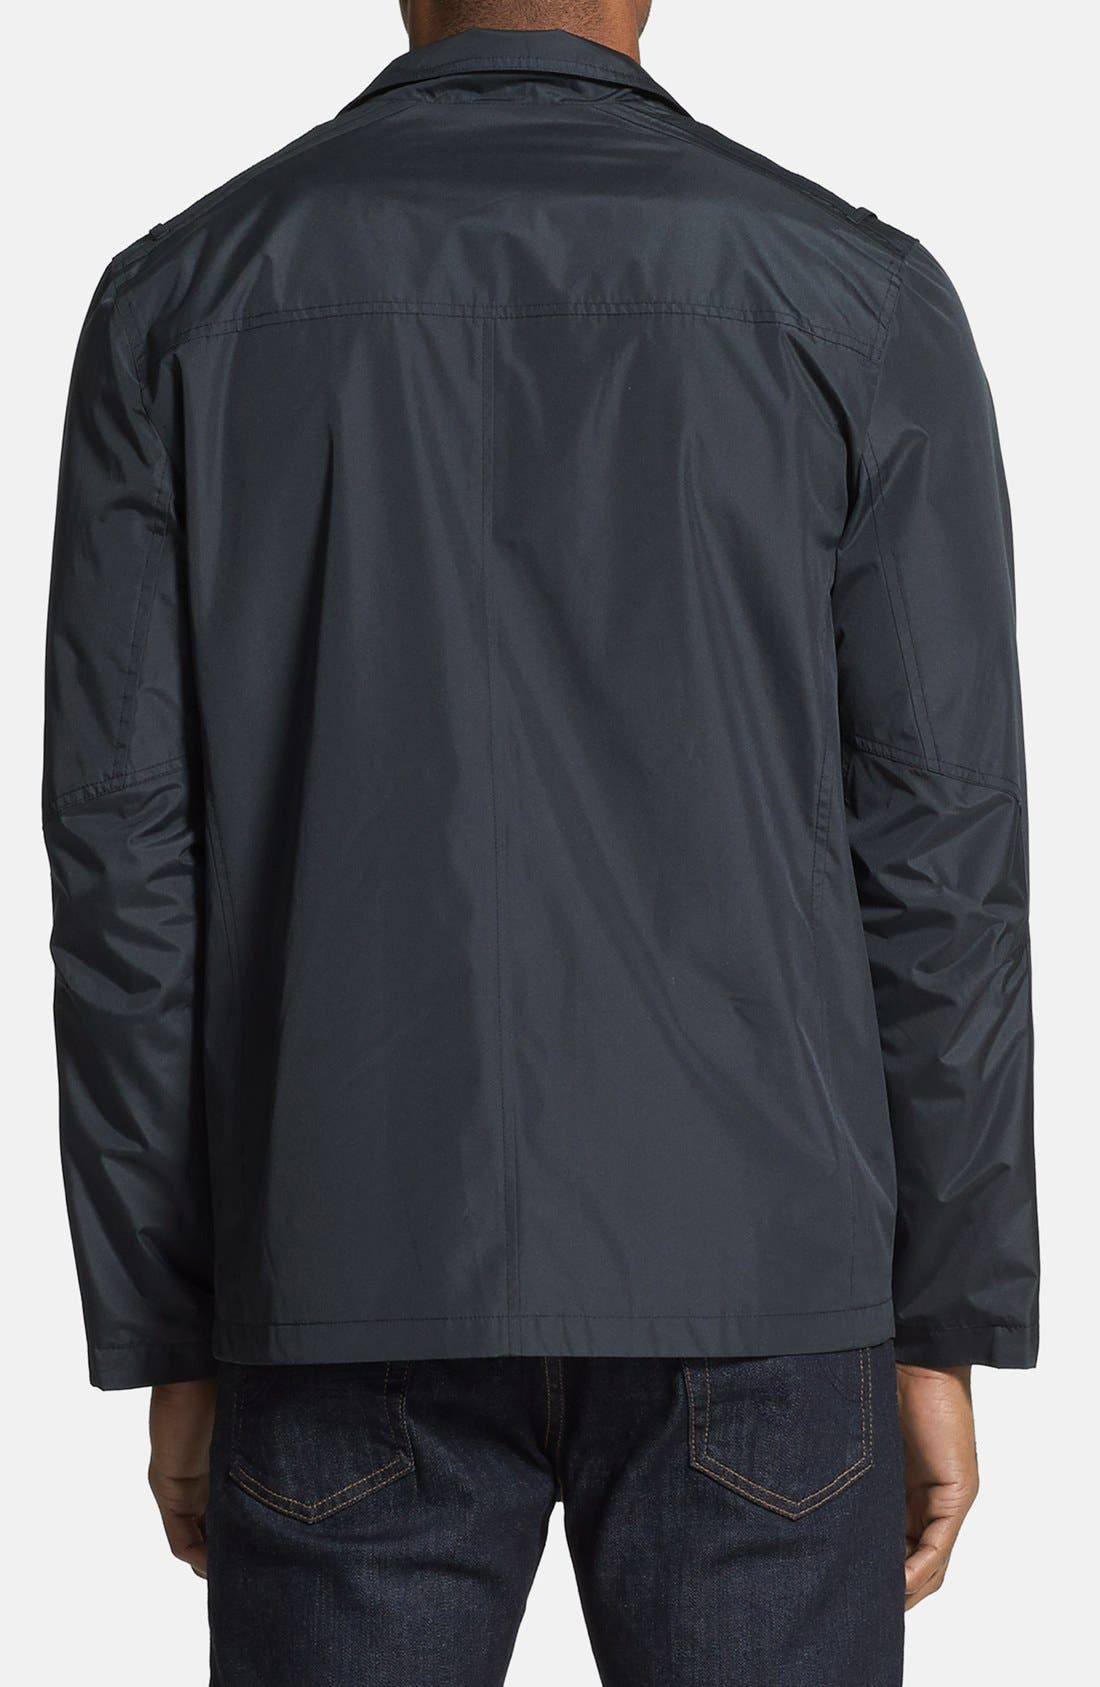 ANDREW MARC,                             'Robert' Water Resistant Jacket,                             Alternate thumbnail 5, color,                             001